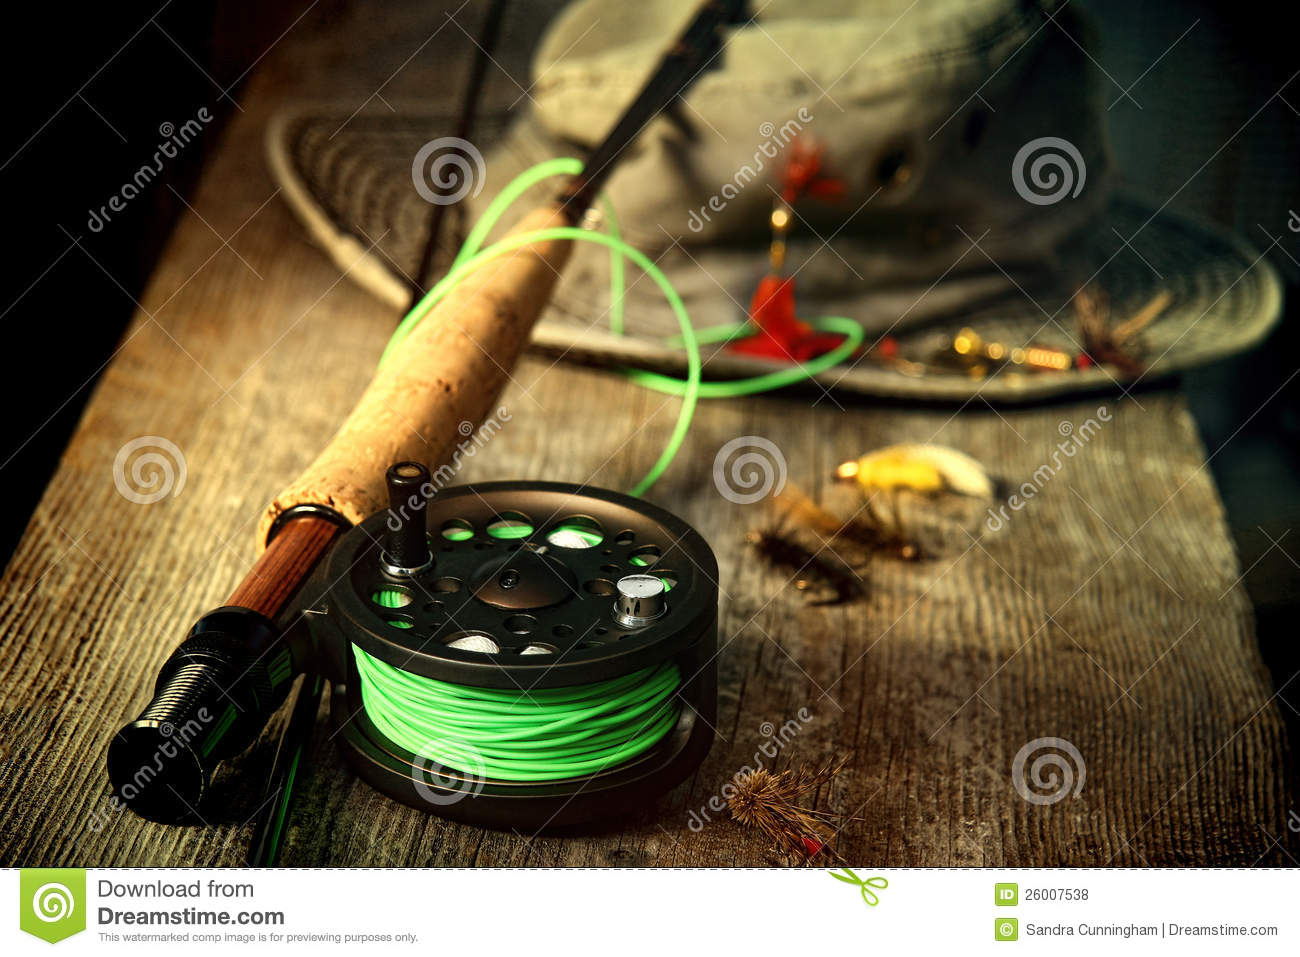 Fly fishing equipment with old hat royalty free stock for How to get free fishing gear